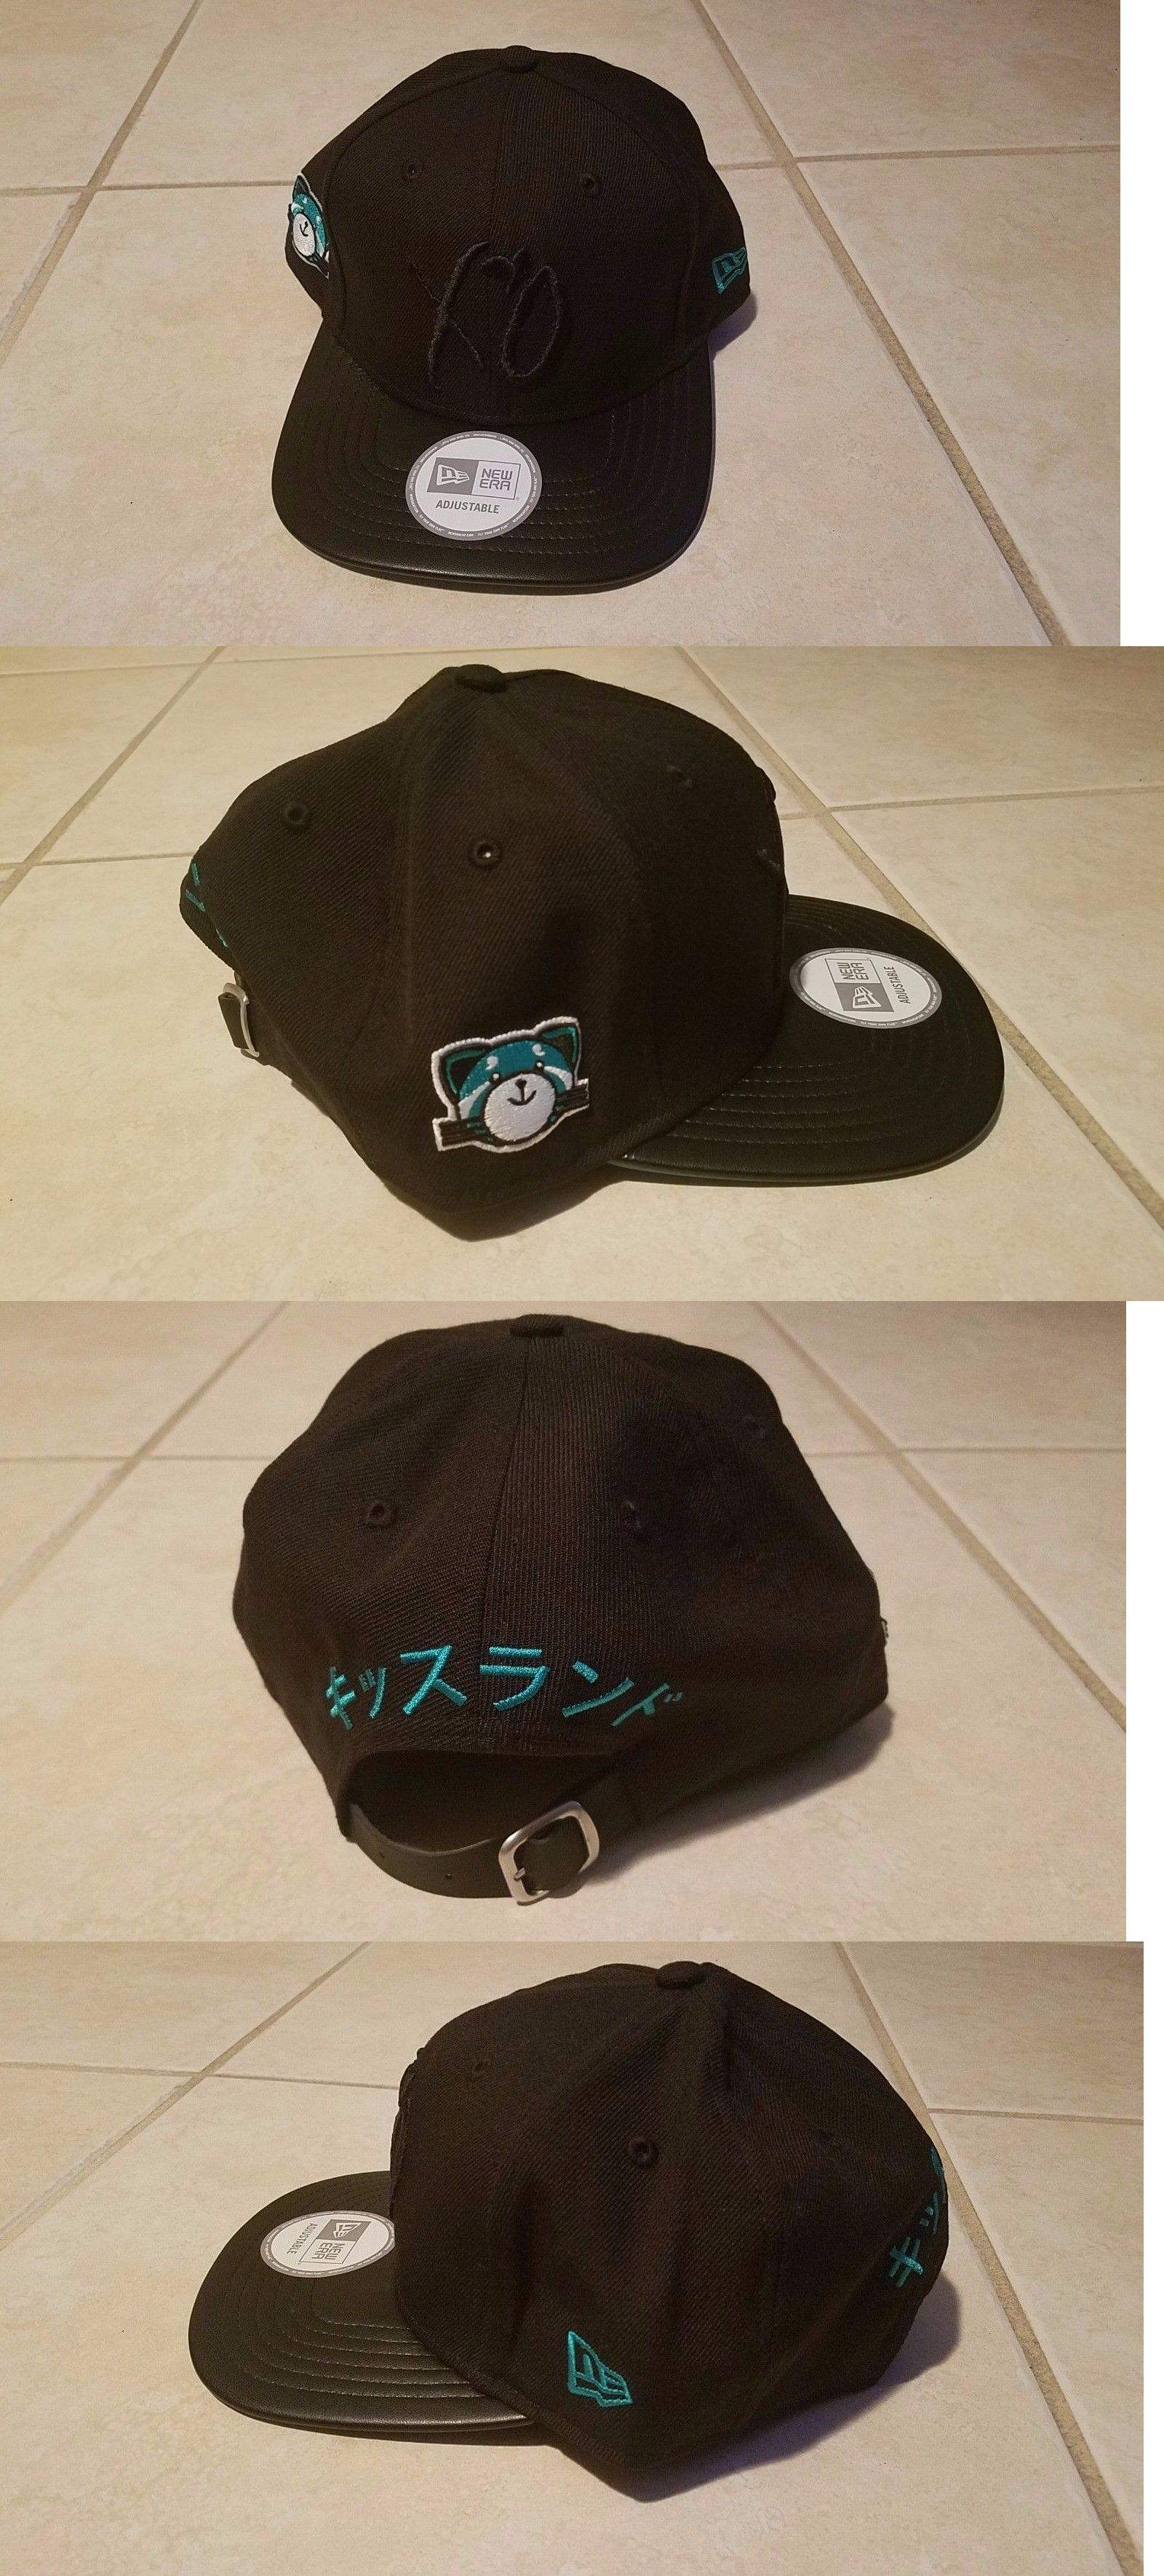 c404f367241 Hats 163543  The Weeknd 2013 Kissland Tour New Era Strapback Hat Limited  Edition Xo Kiss Land -  BUY IT NOW ONLY   119.95 on eBay!